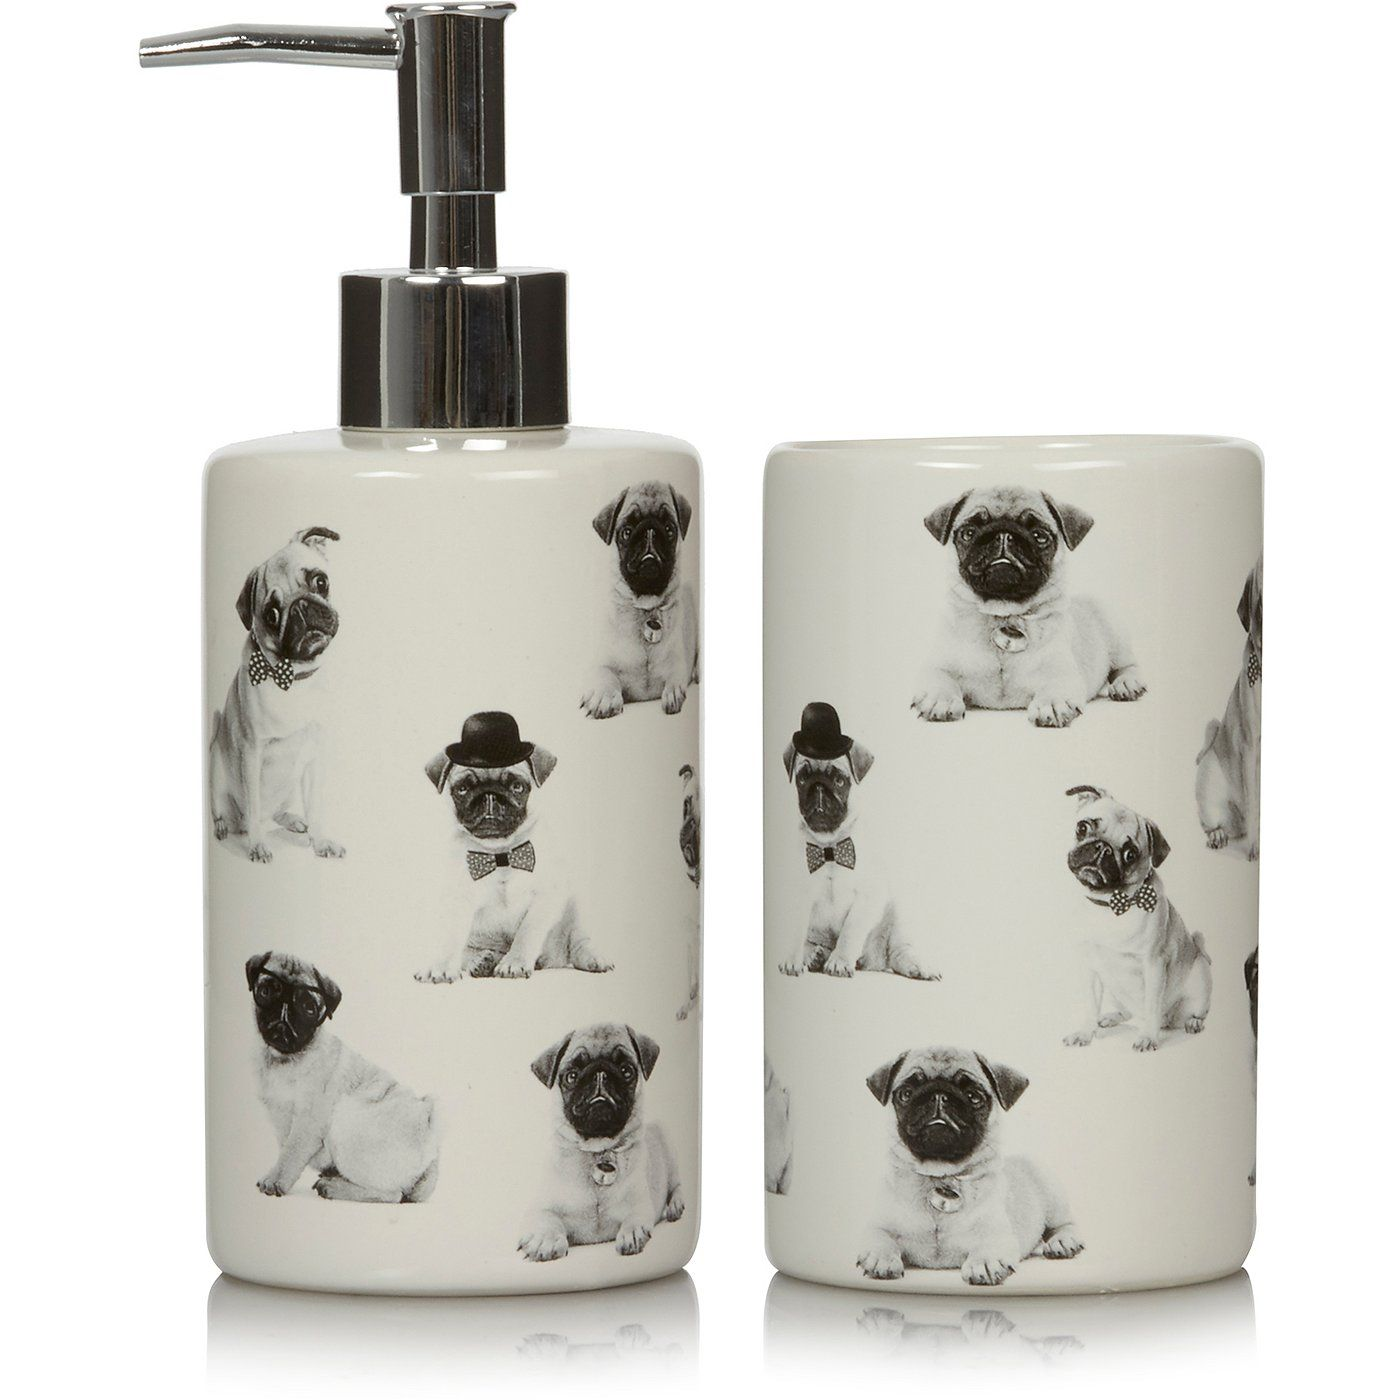 Buy George Home Pug Bath Accessories Range from our Bathroom ...